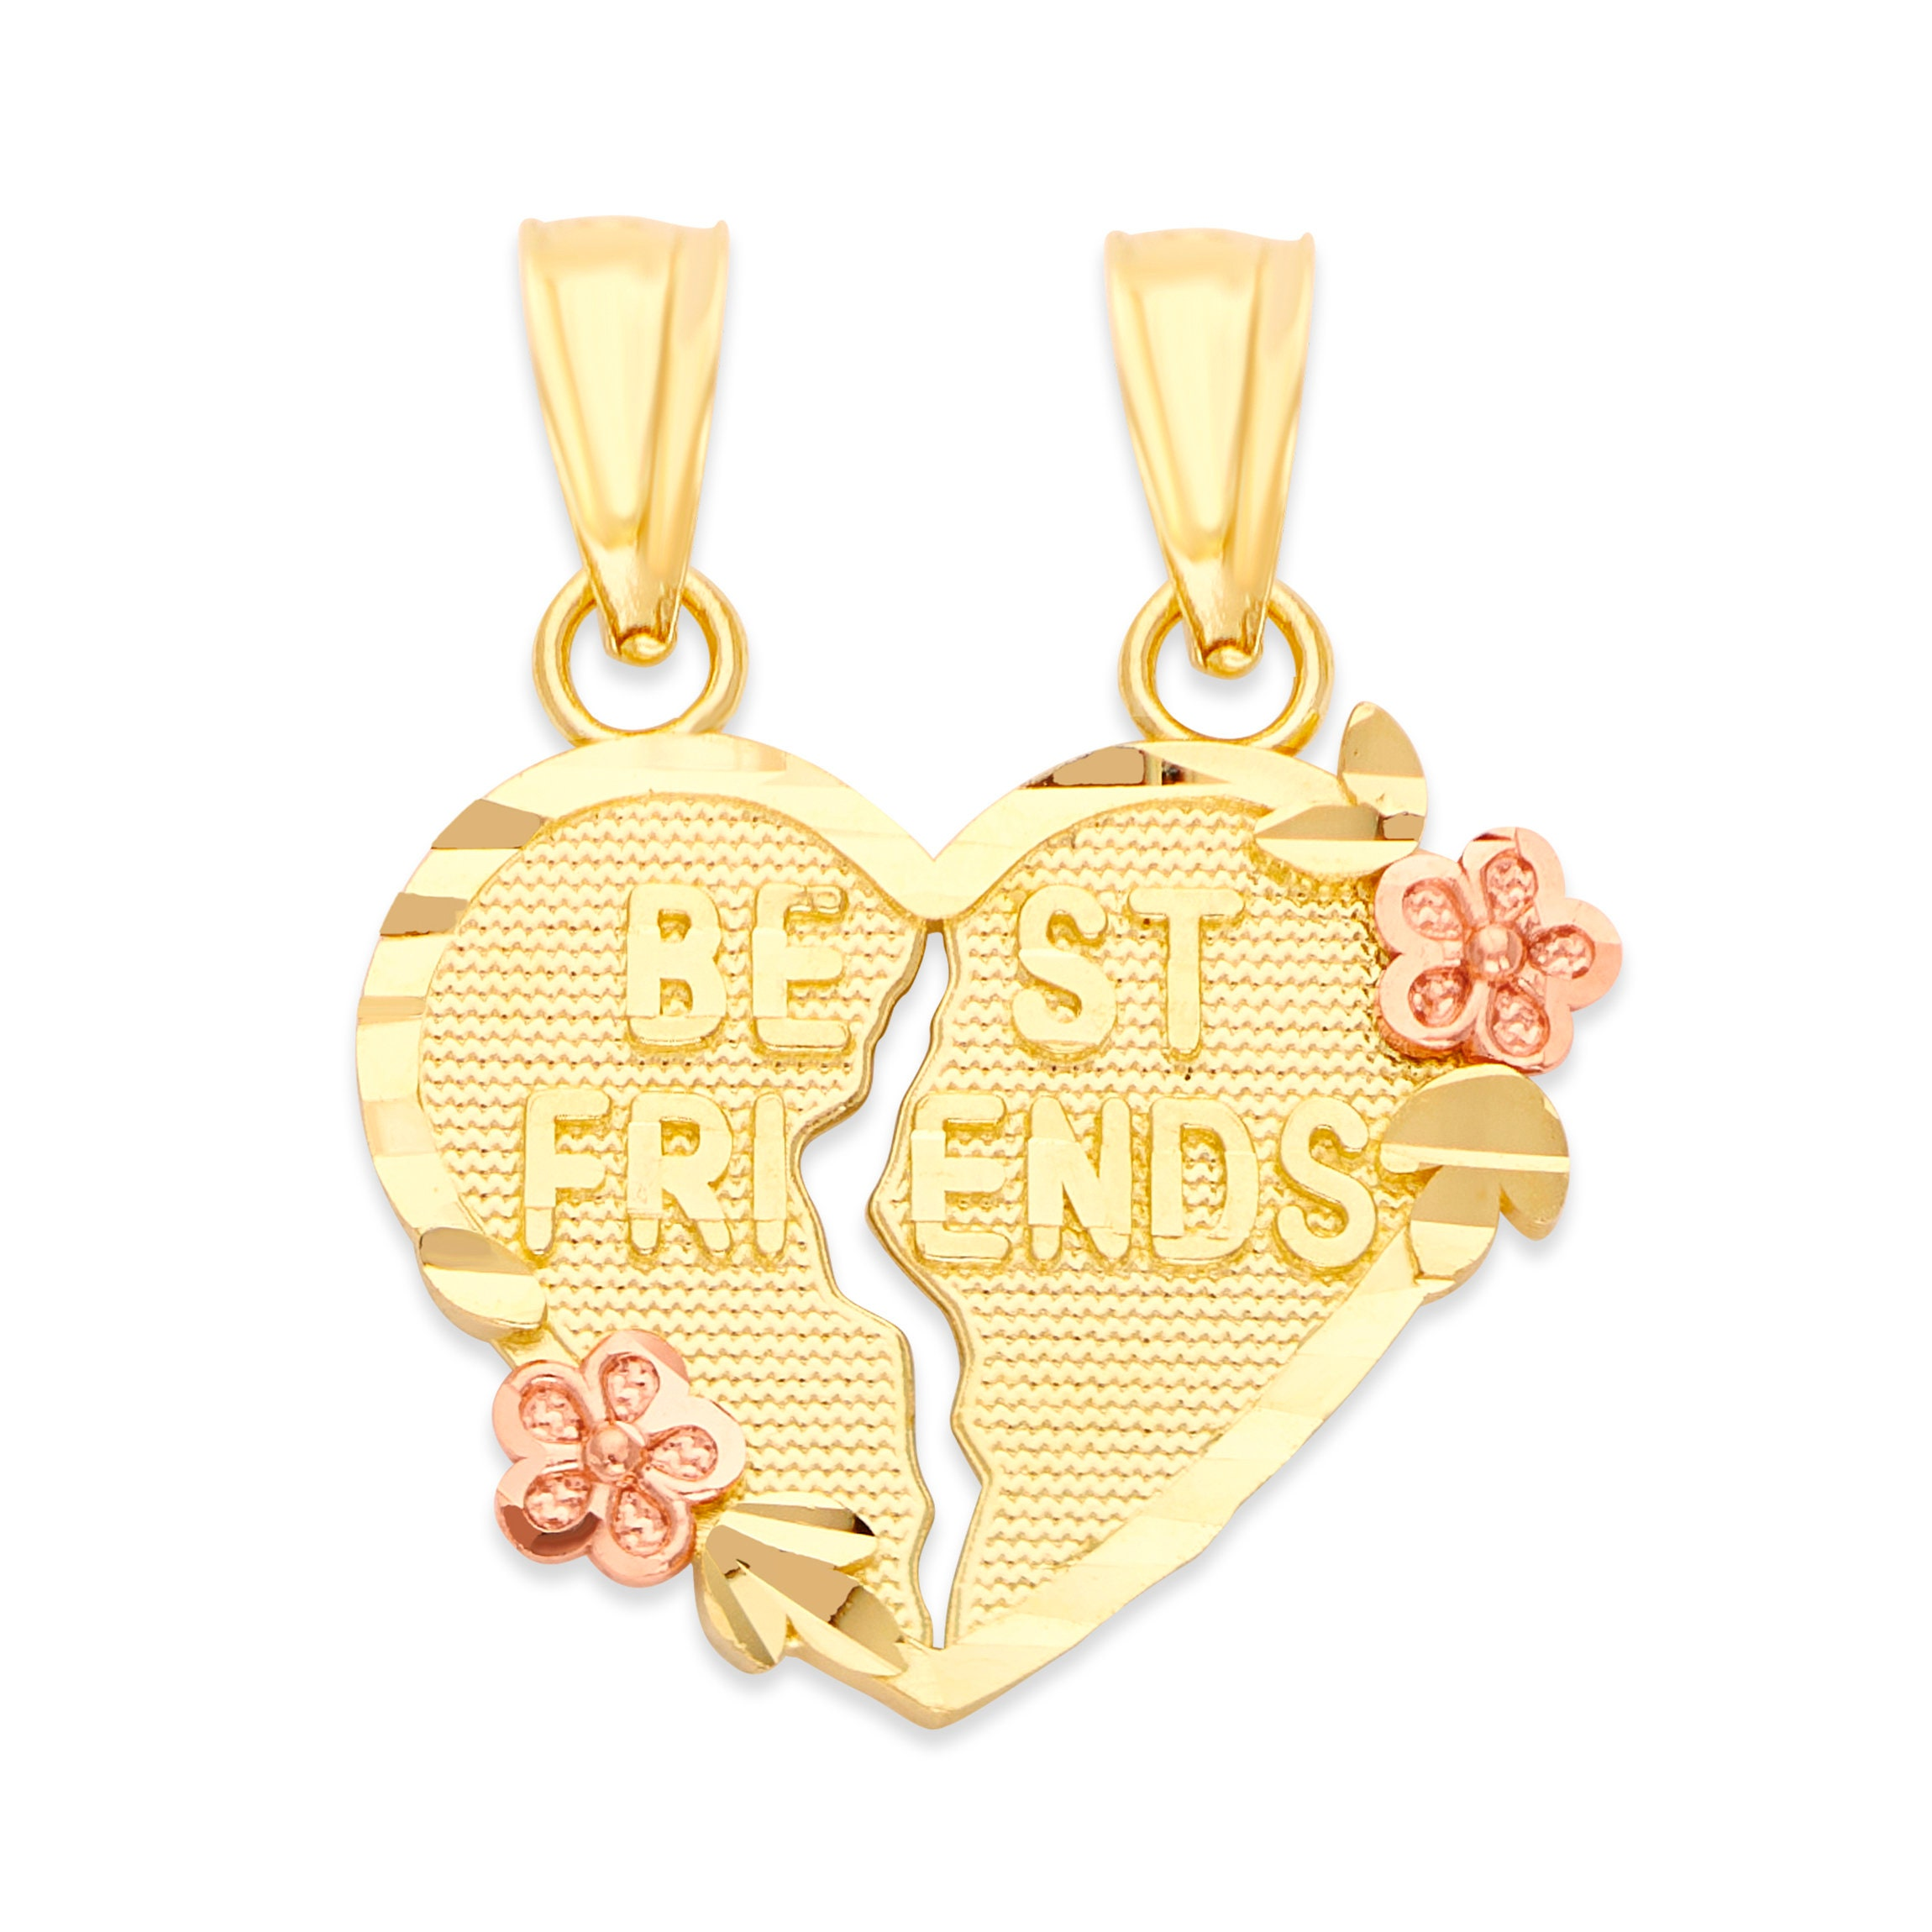 Long Distance Friends Birthday gift for her Friend Gift Tiny Heart Gold heart Necklace Diamond Heart Necklace Best Friend Necklace